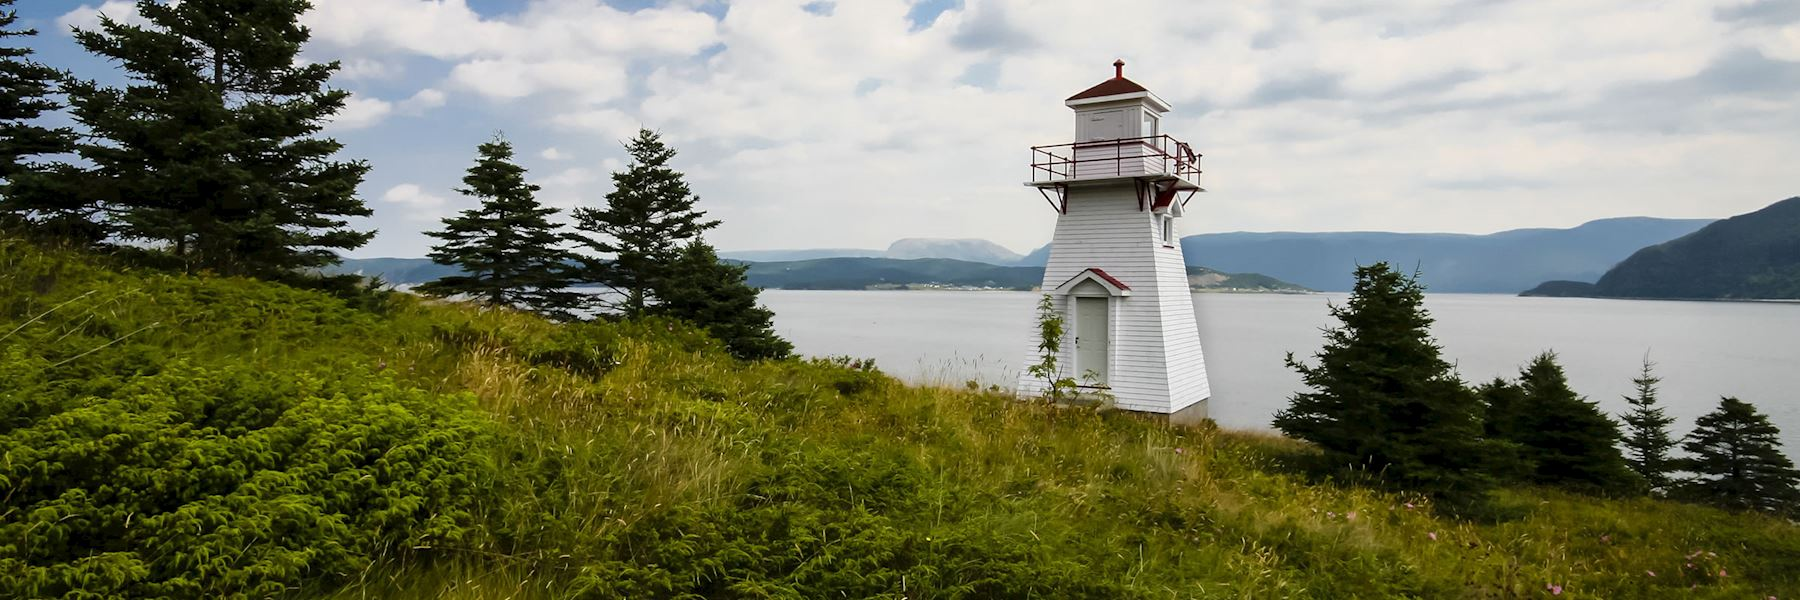 Visit the Great Northern Peninsula, Canada